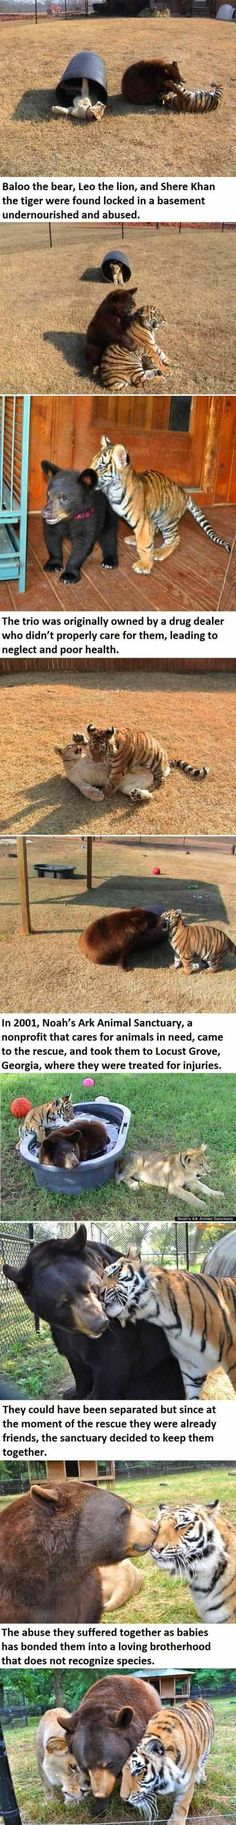 Baloo The Bear, Leo The Lion, & Shere Khan The Tiger